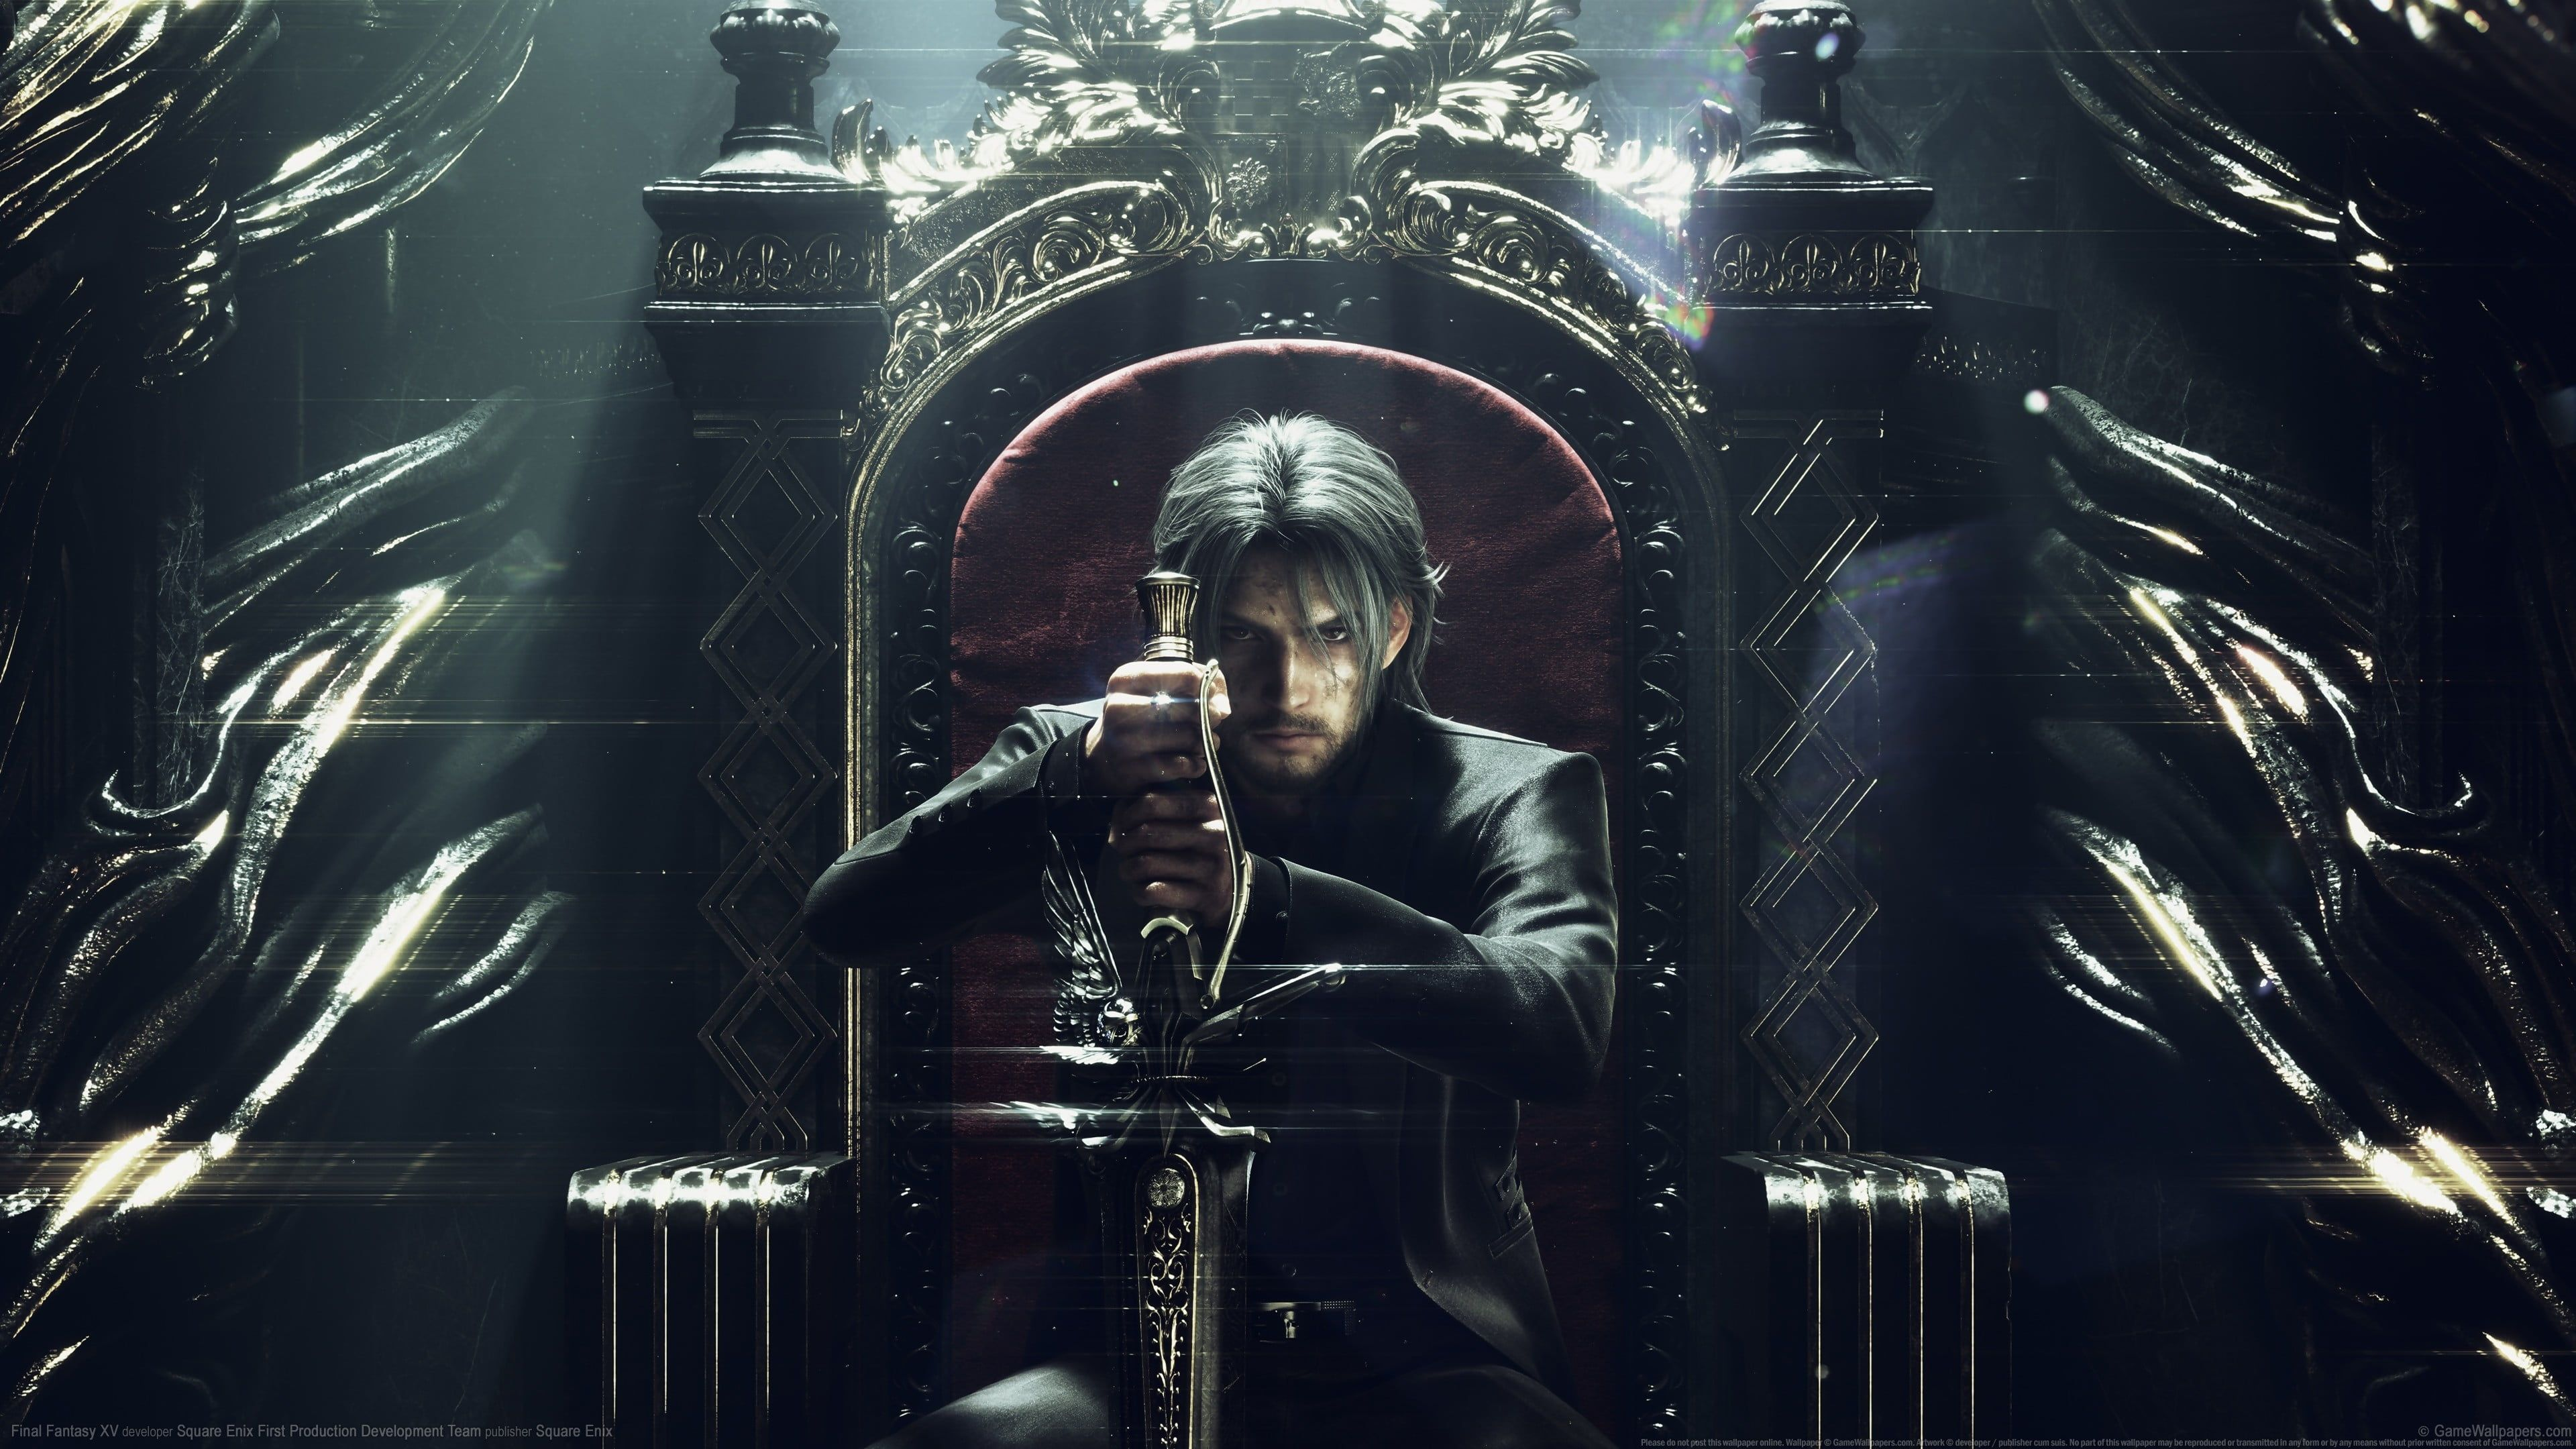 Game Cover Video Games Digital Art Final Fantasy Xv Throne Men Sword Square Enix Final Fantasy N Final Fantasy Xv Wallpapers Final Fantasy Xv Final Fantasy